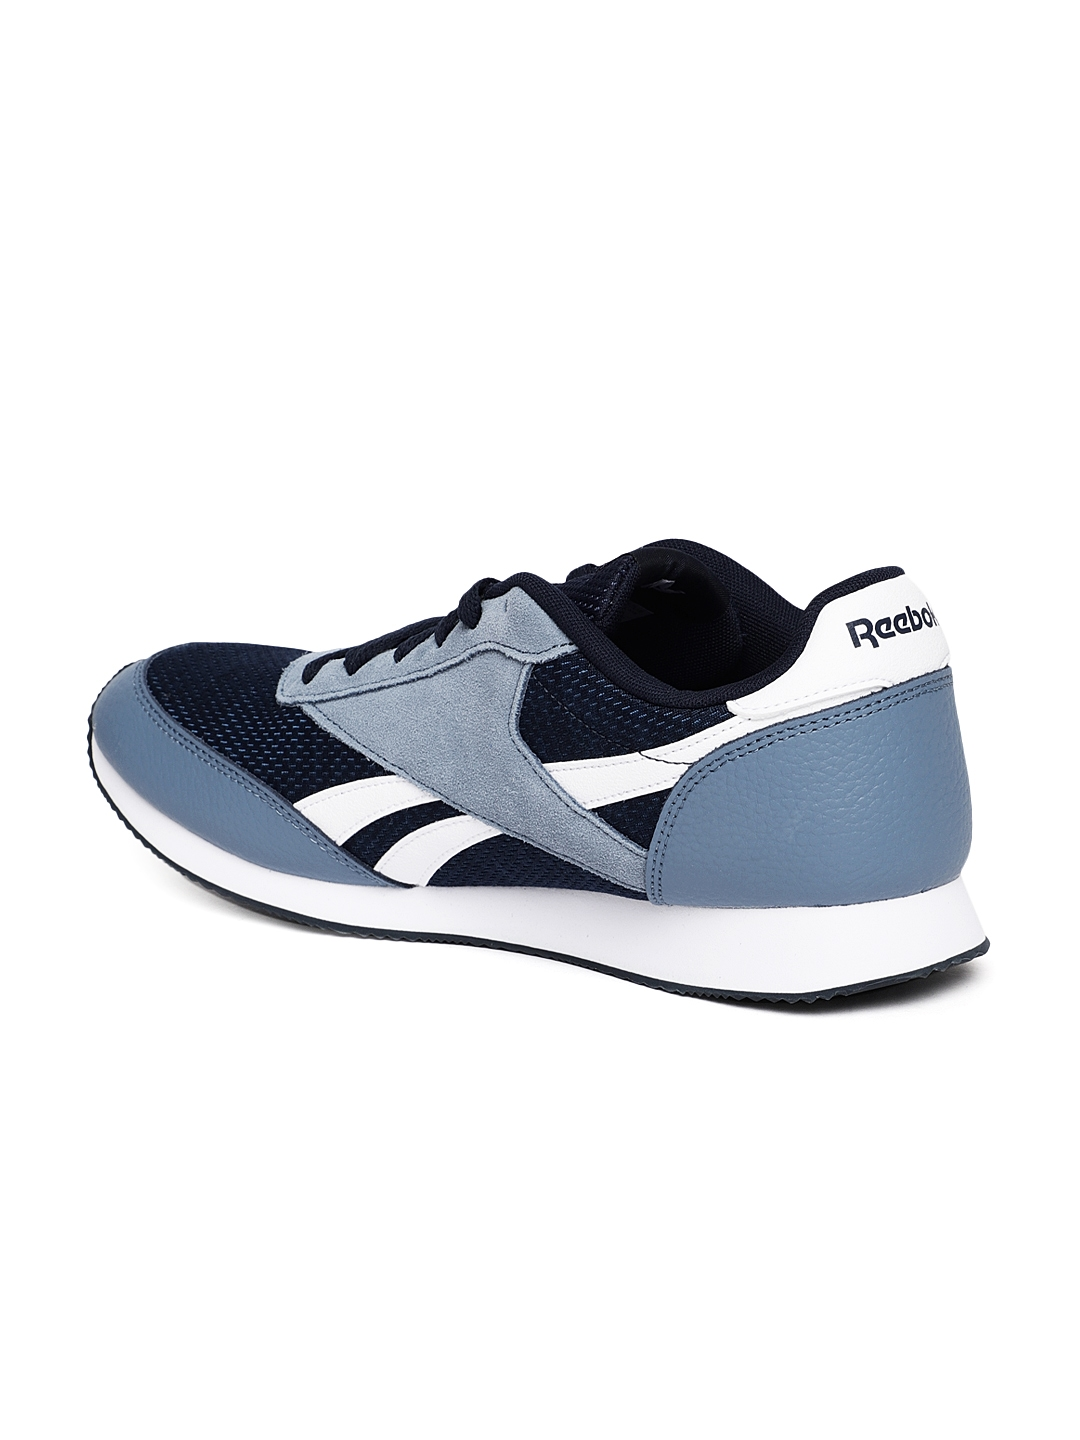 188af63faa4 Buy REEBOK Classic Men Navy Blue ROYAL JOGGER 2 Running Shoes ...